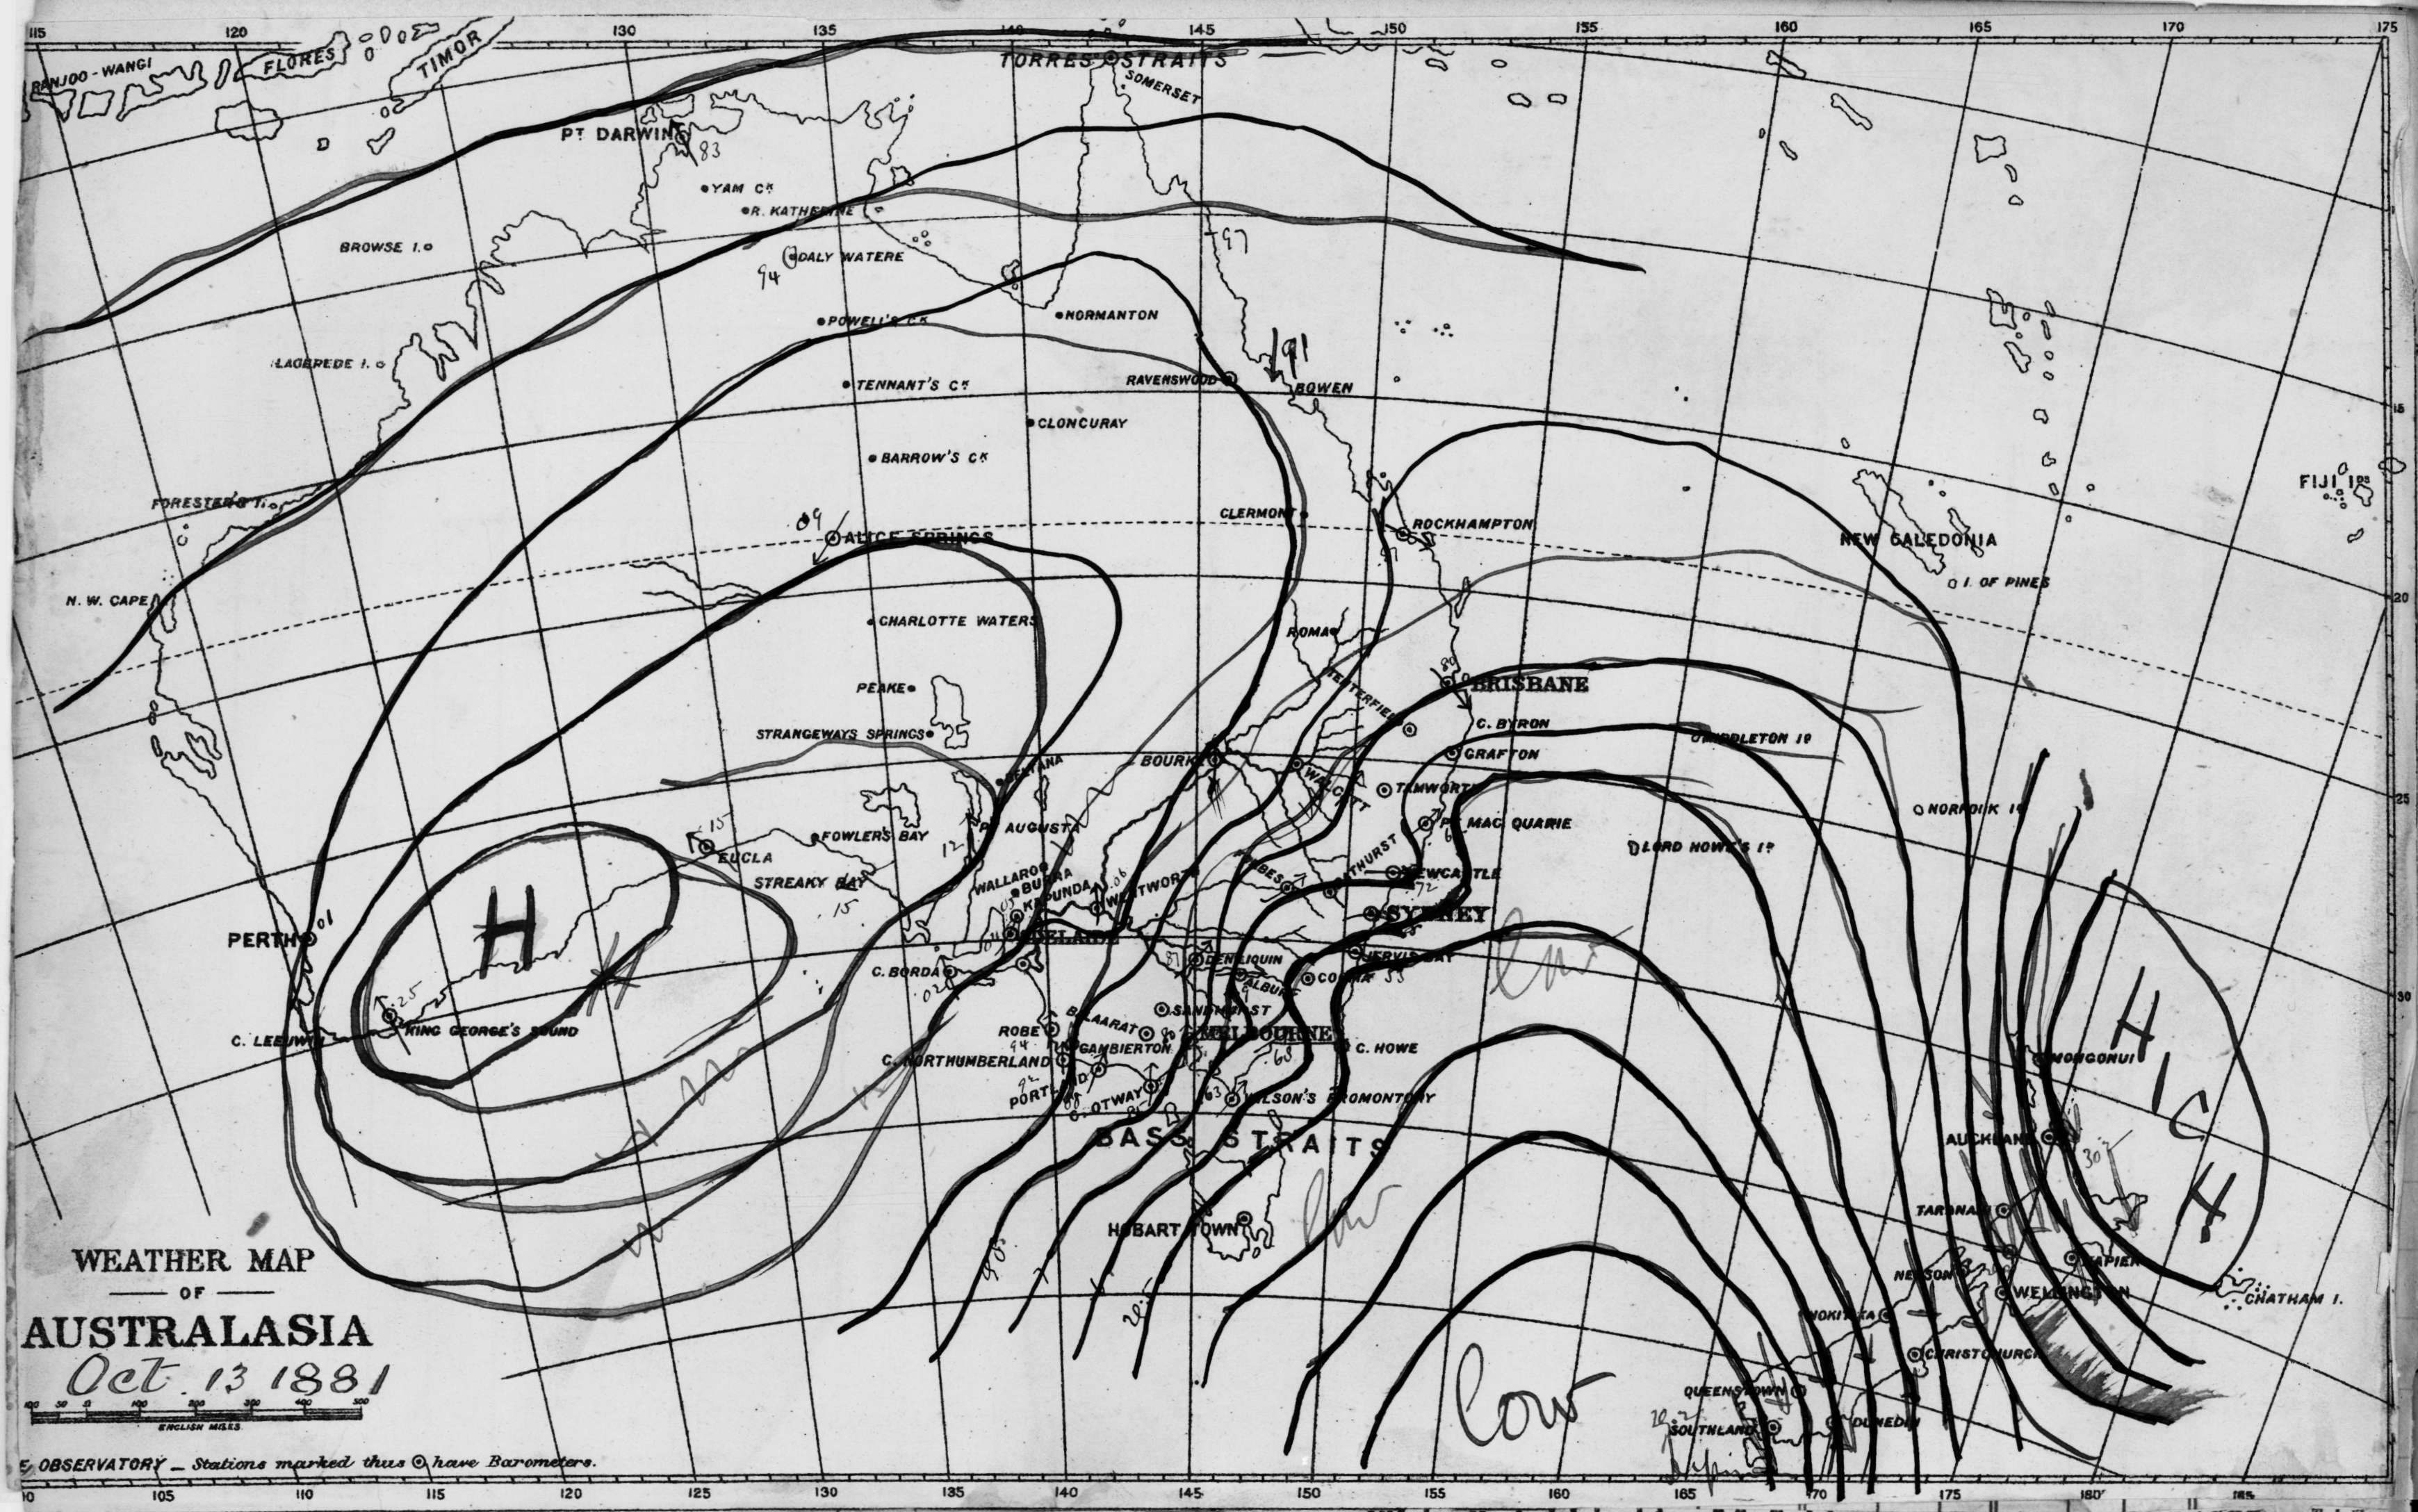 18811013c0900 Weather map